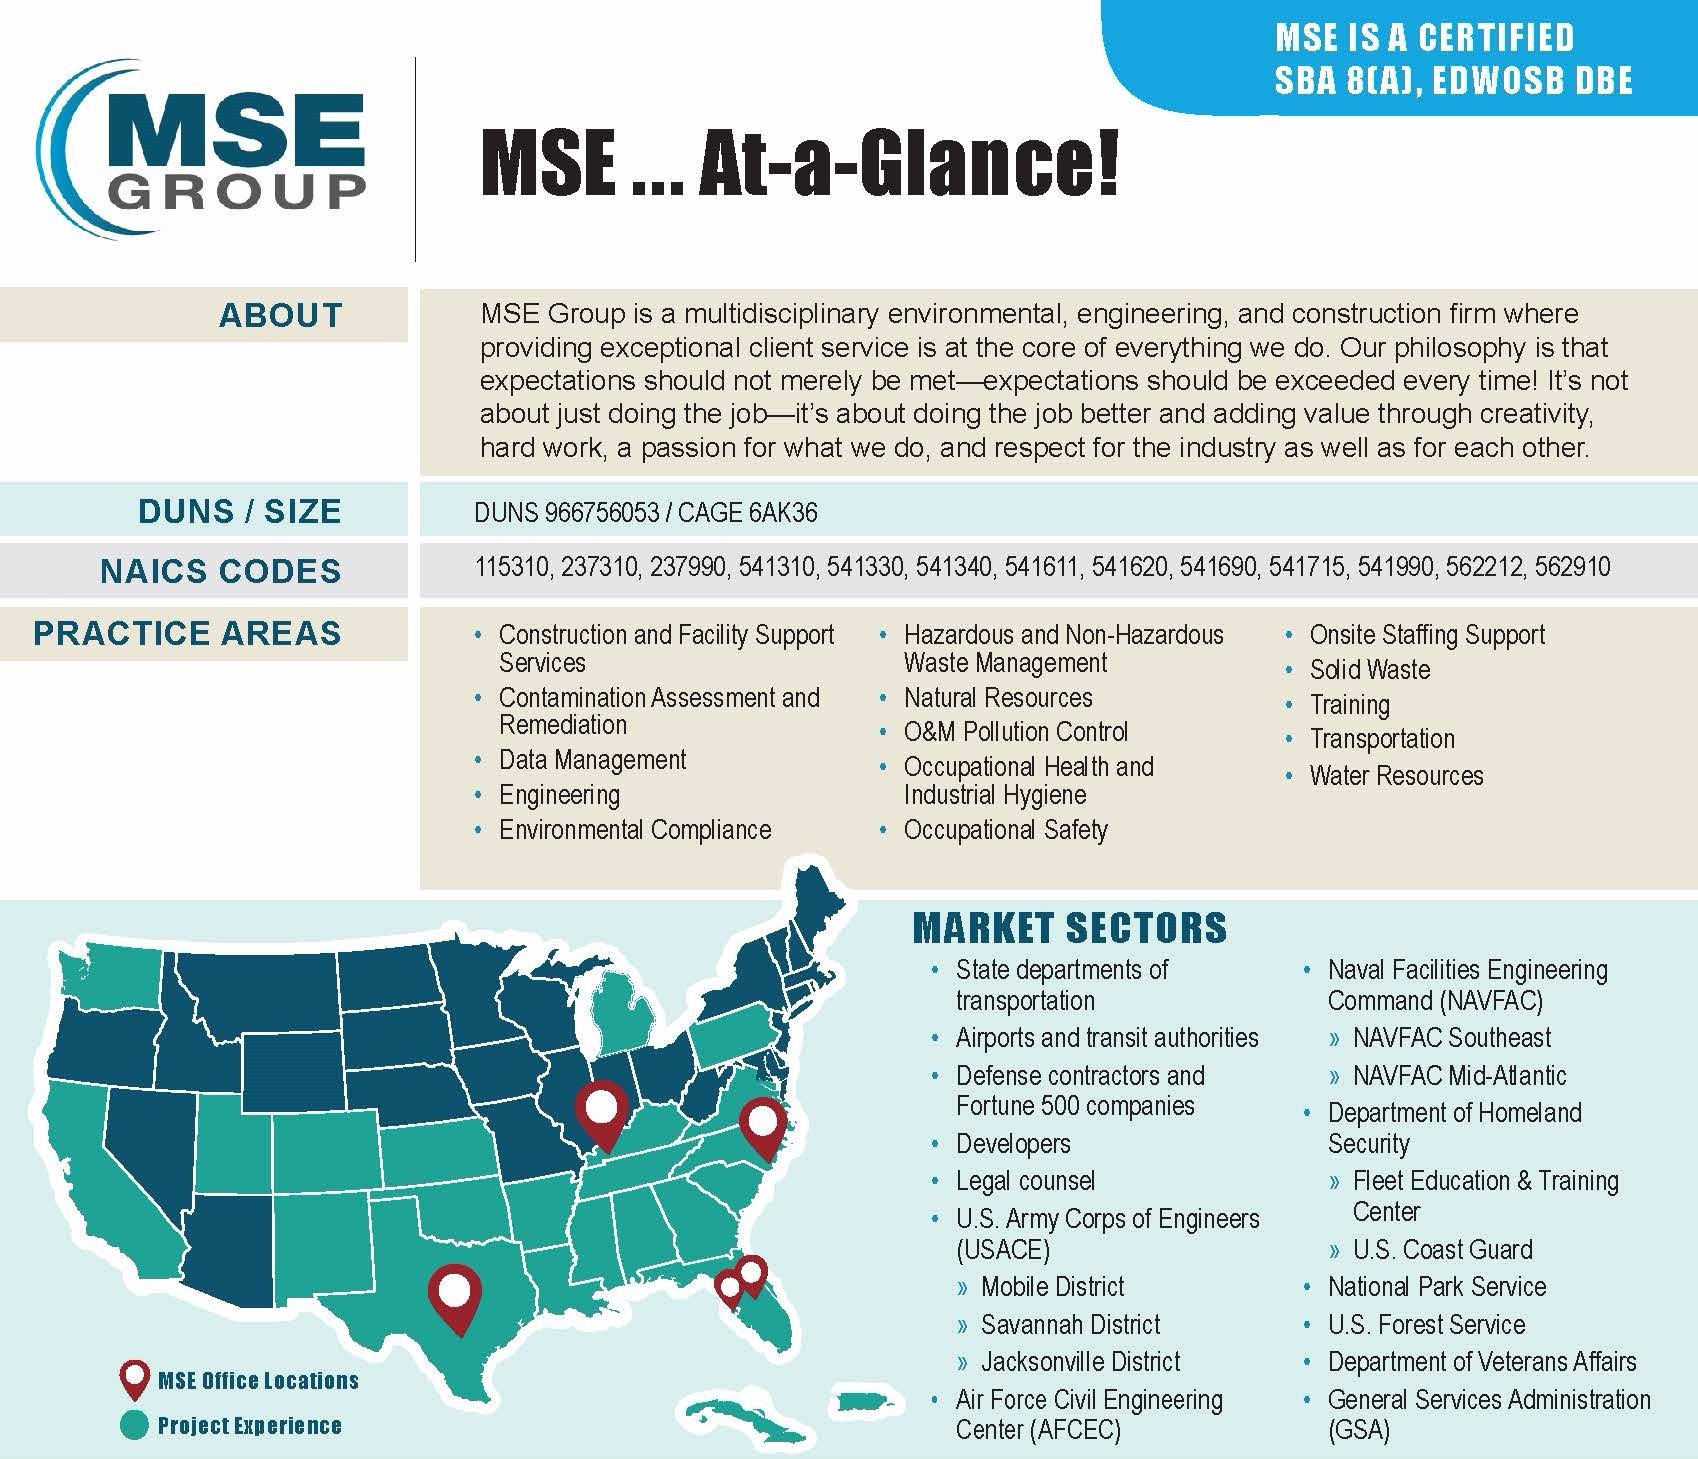 MSE At a glance